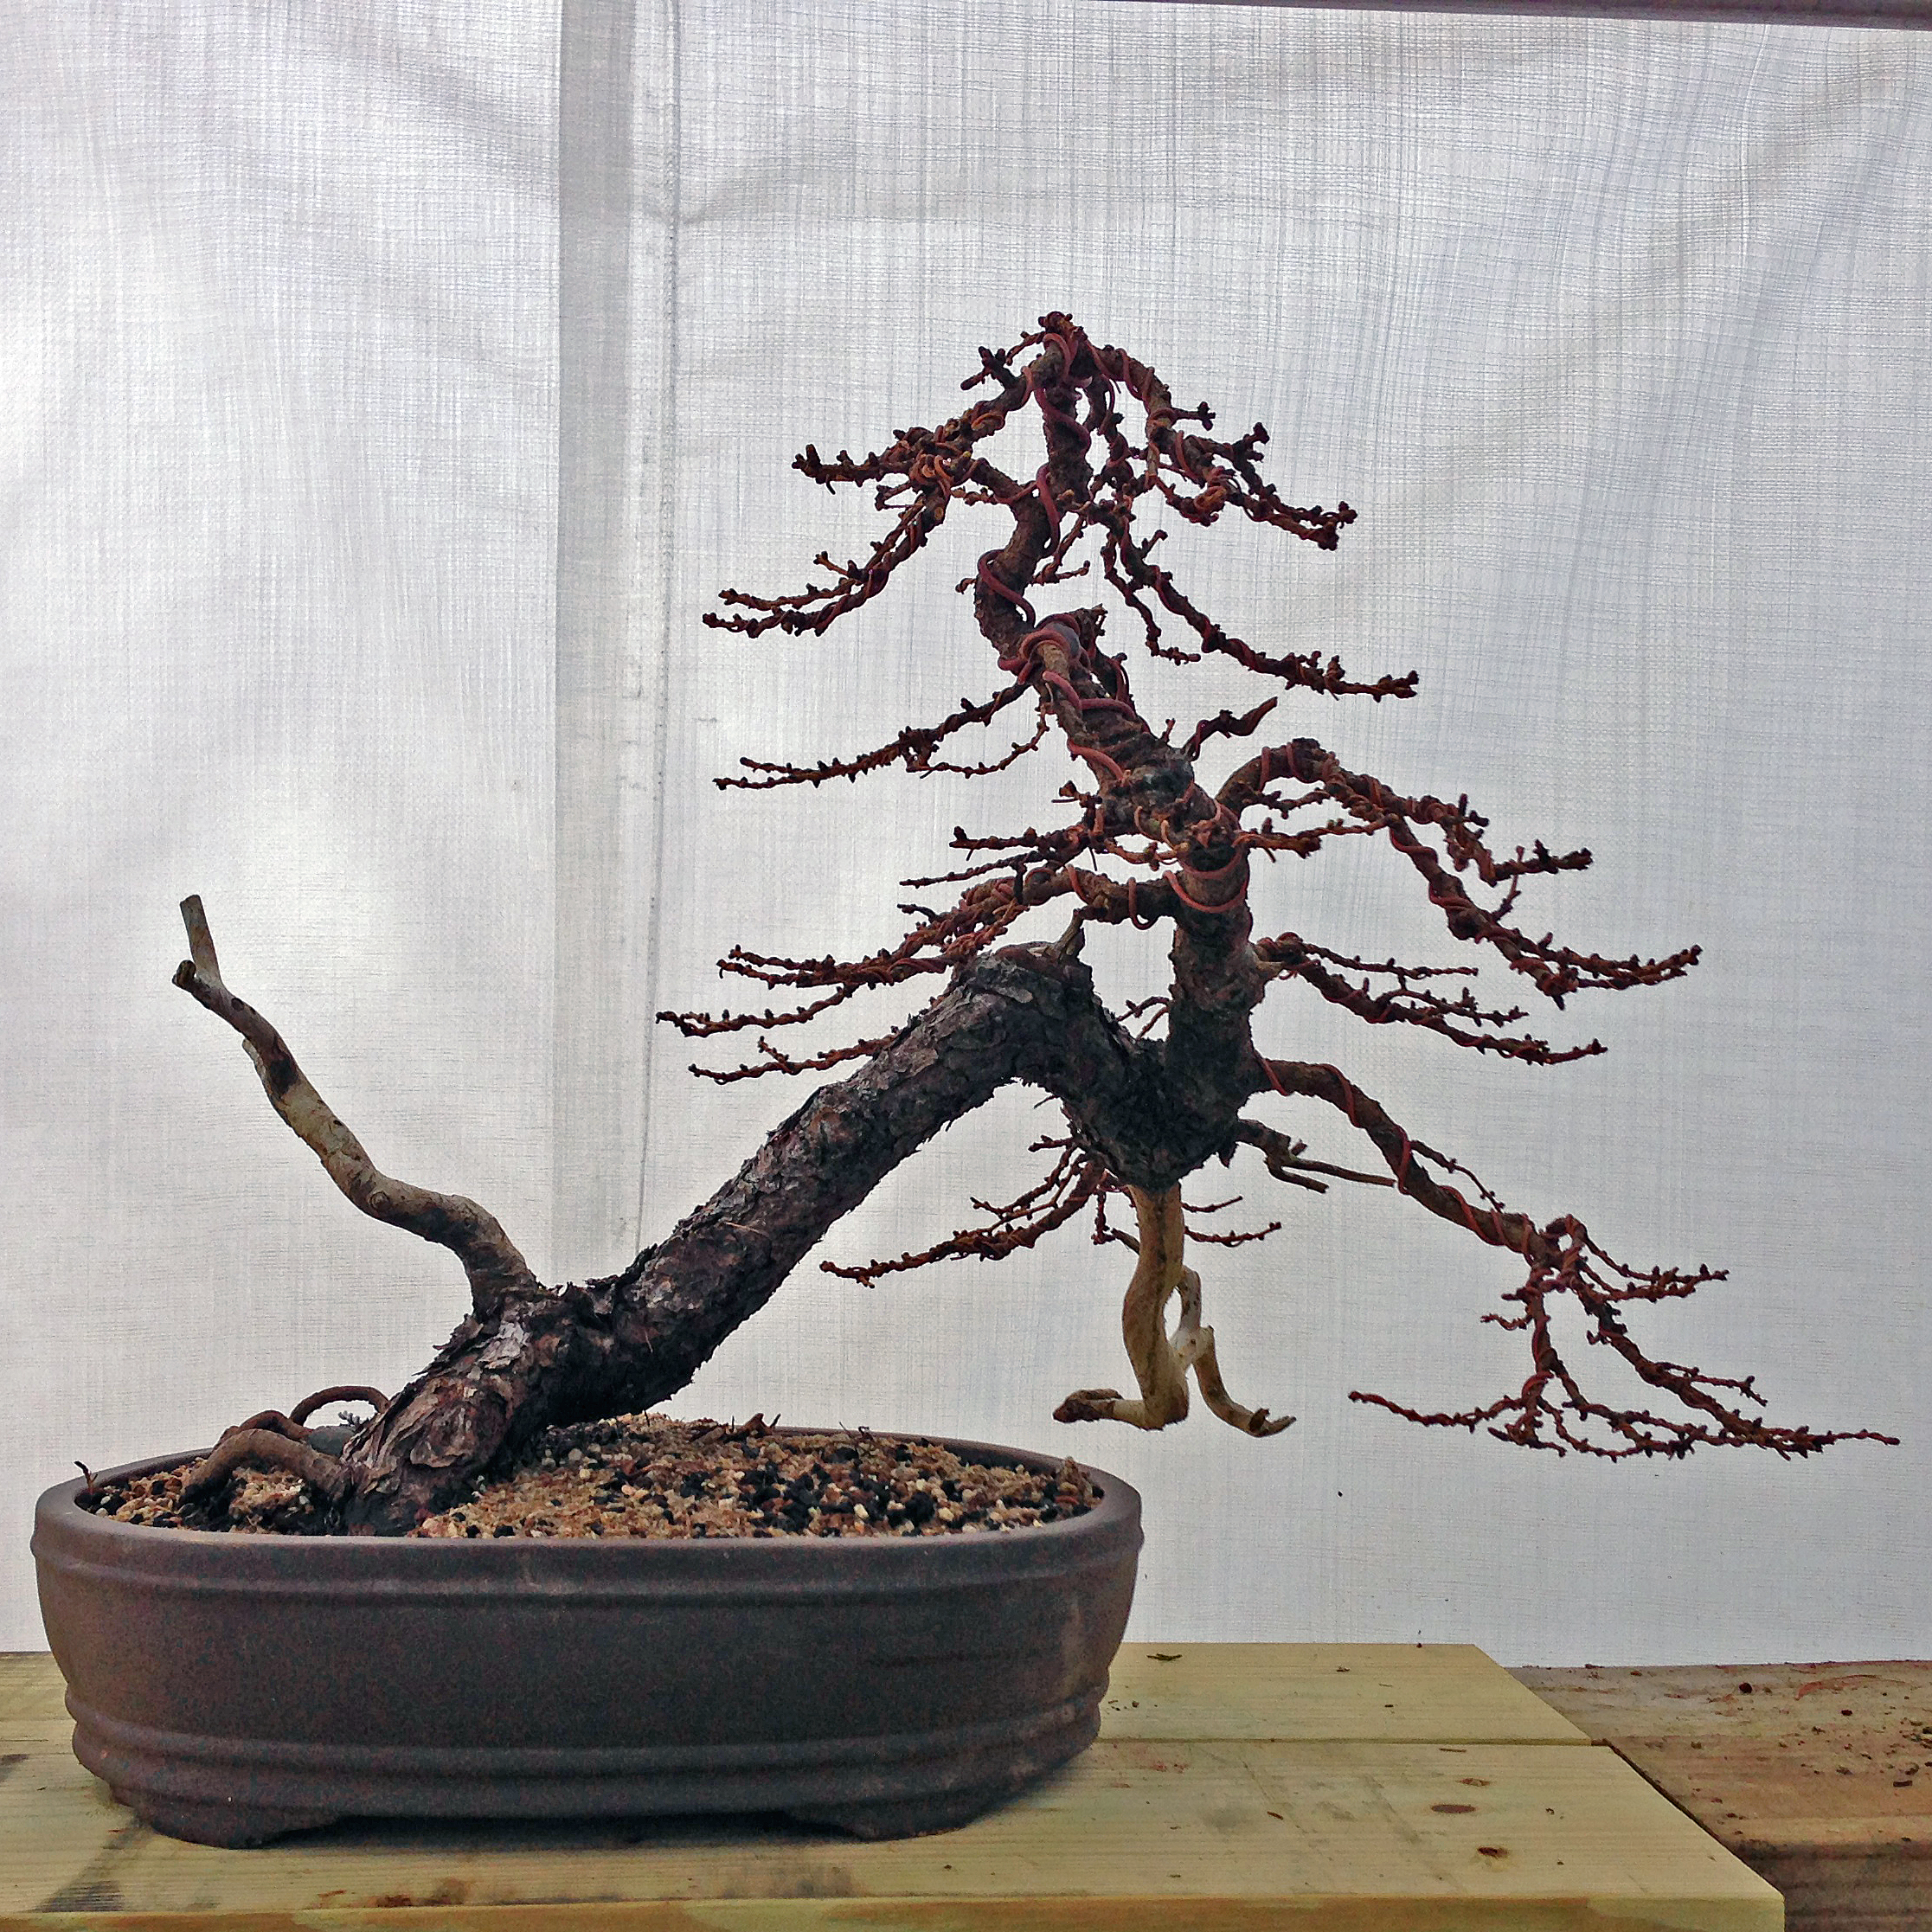 My American (Canadian) larch in its new pot. Can't wait to clean up the pot and take a photo with my real camera.